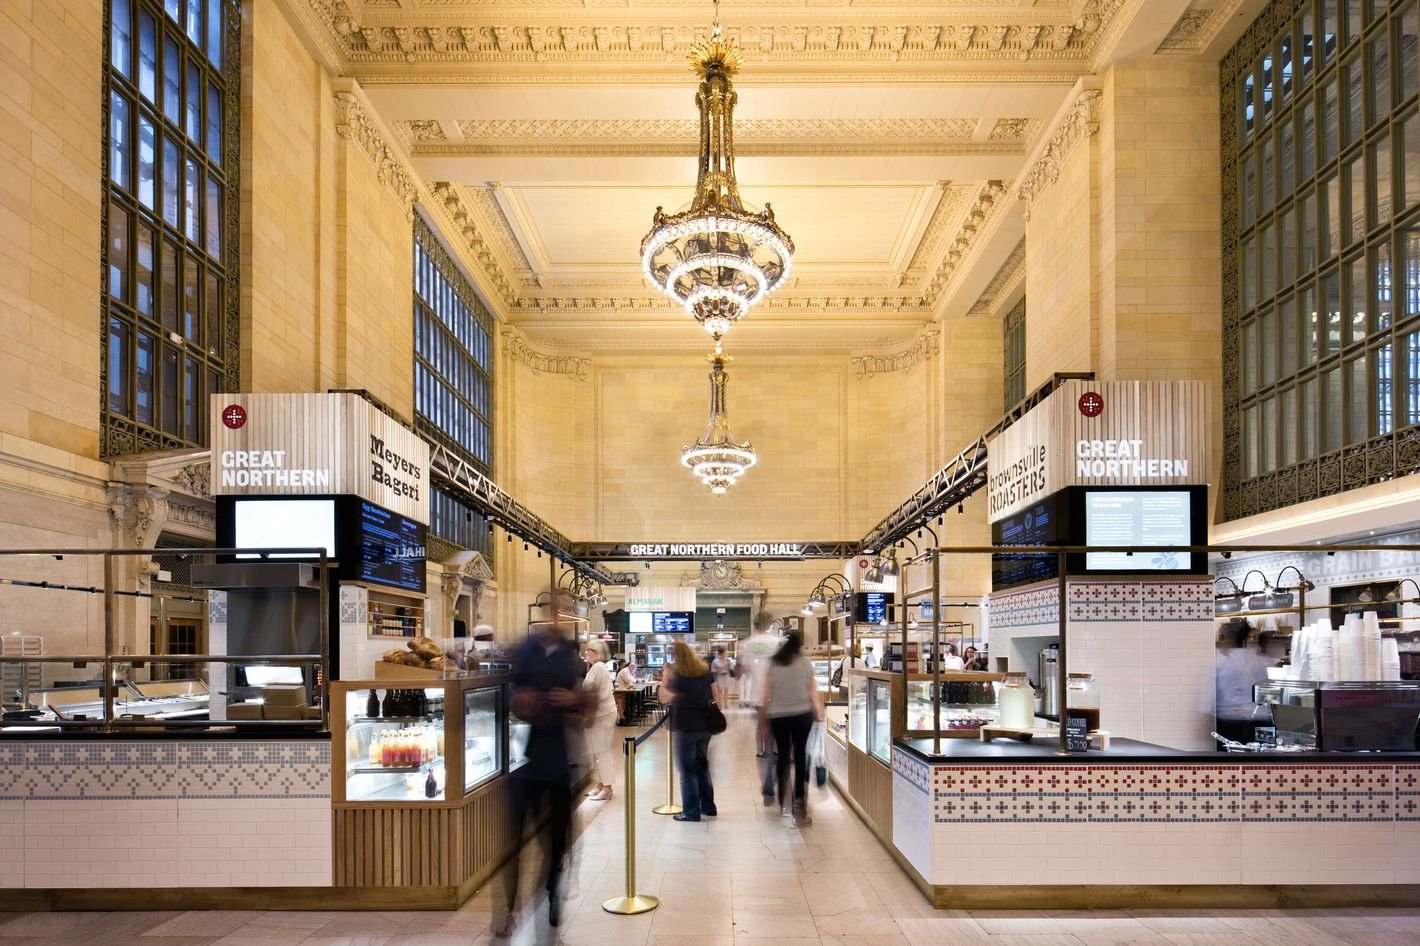 Great Northern Food Hall A New Nordic Food Hall From A Noma Cofounder